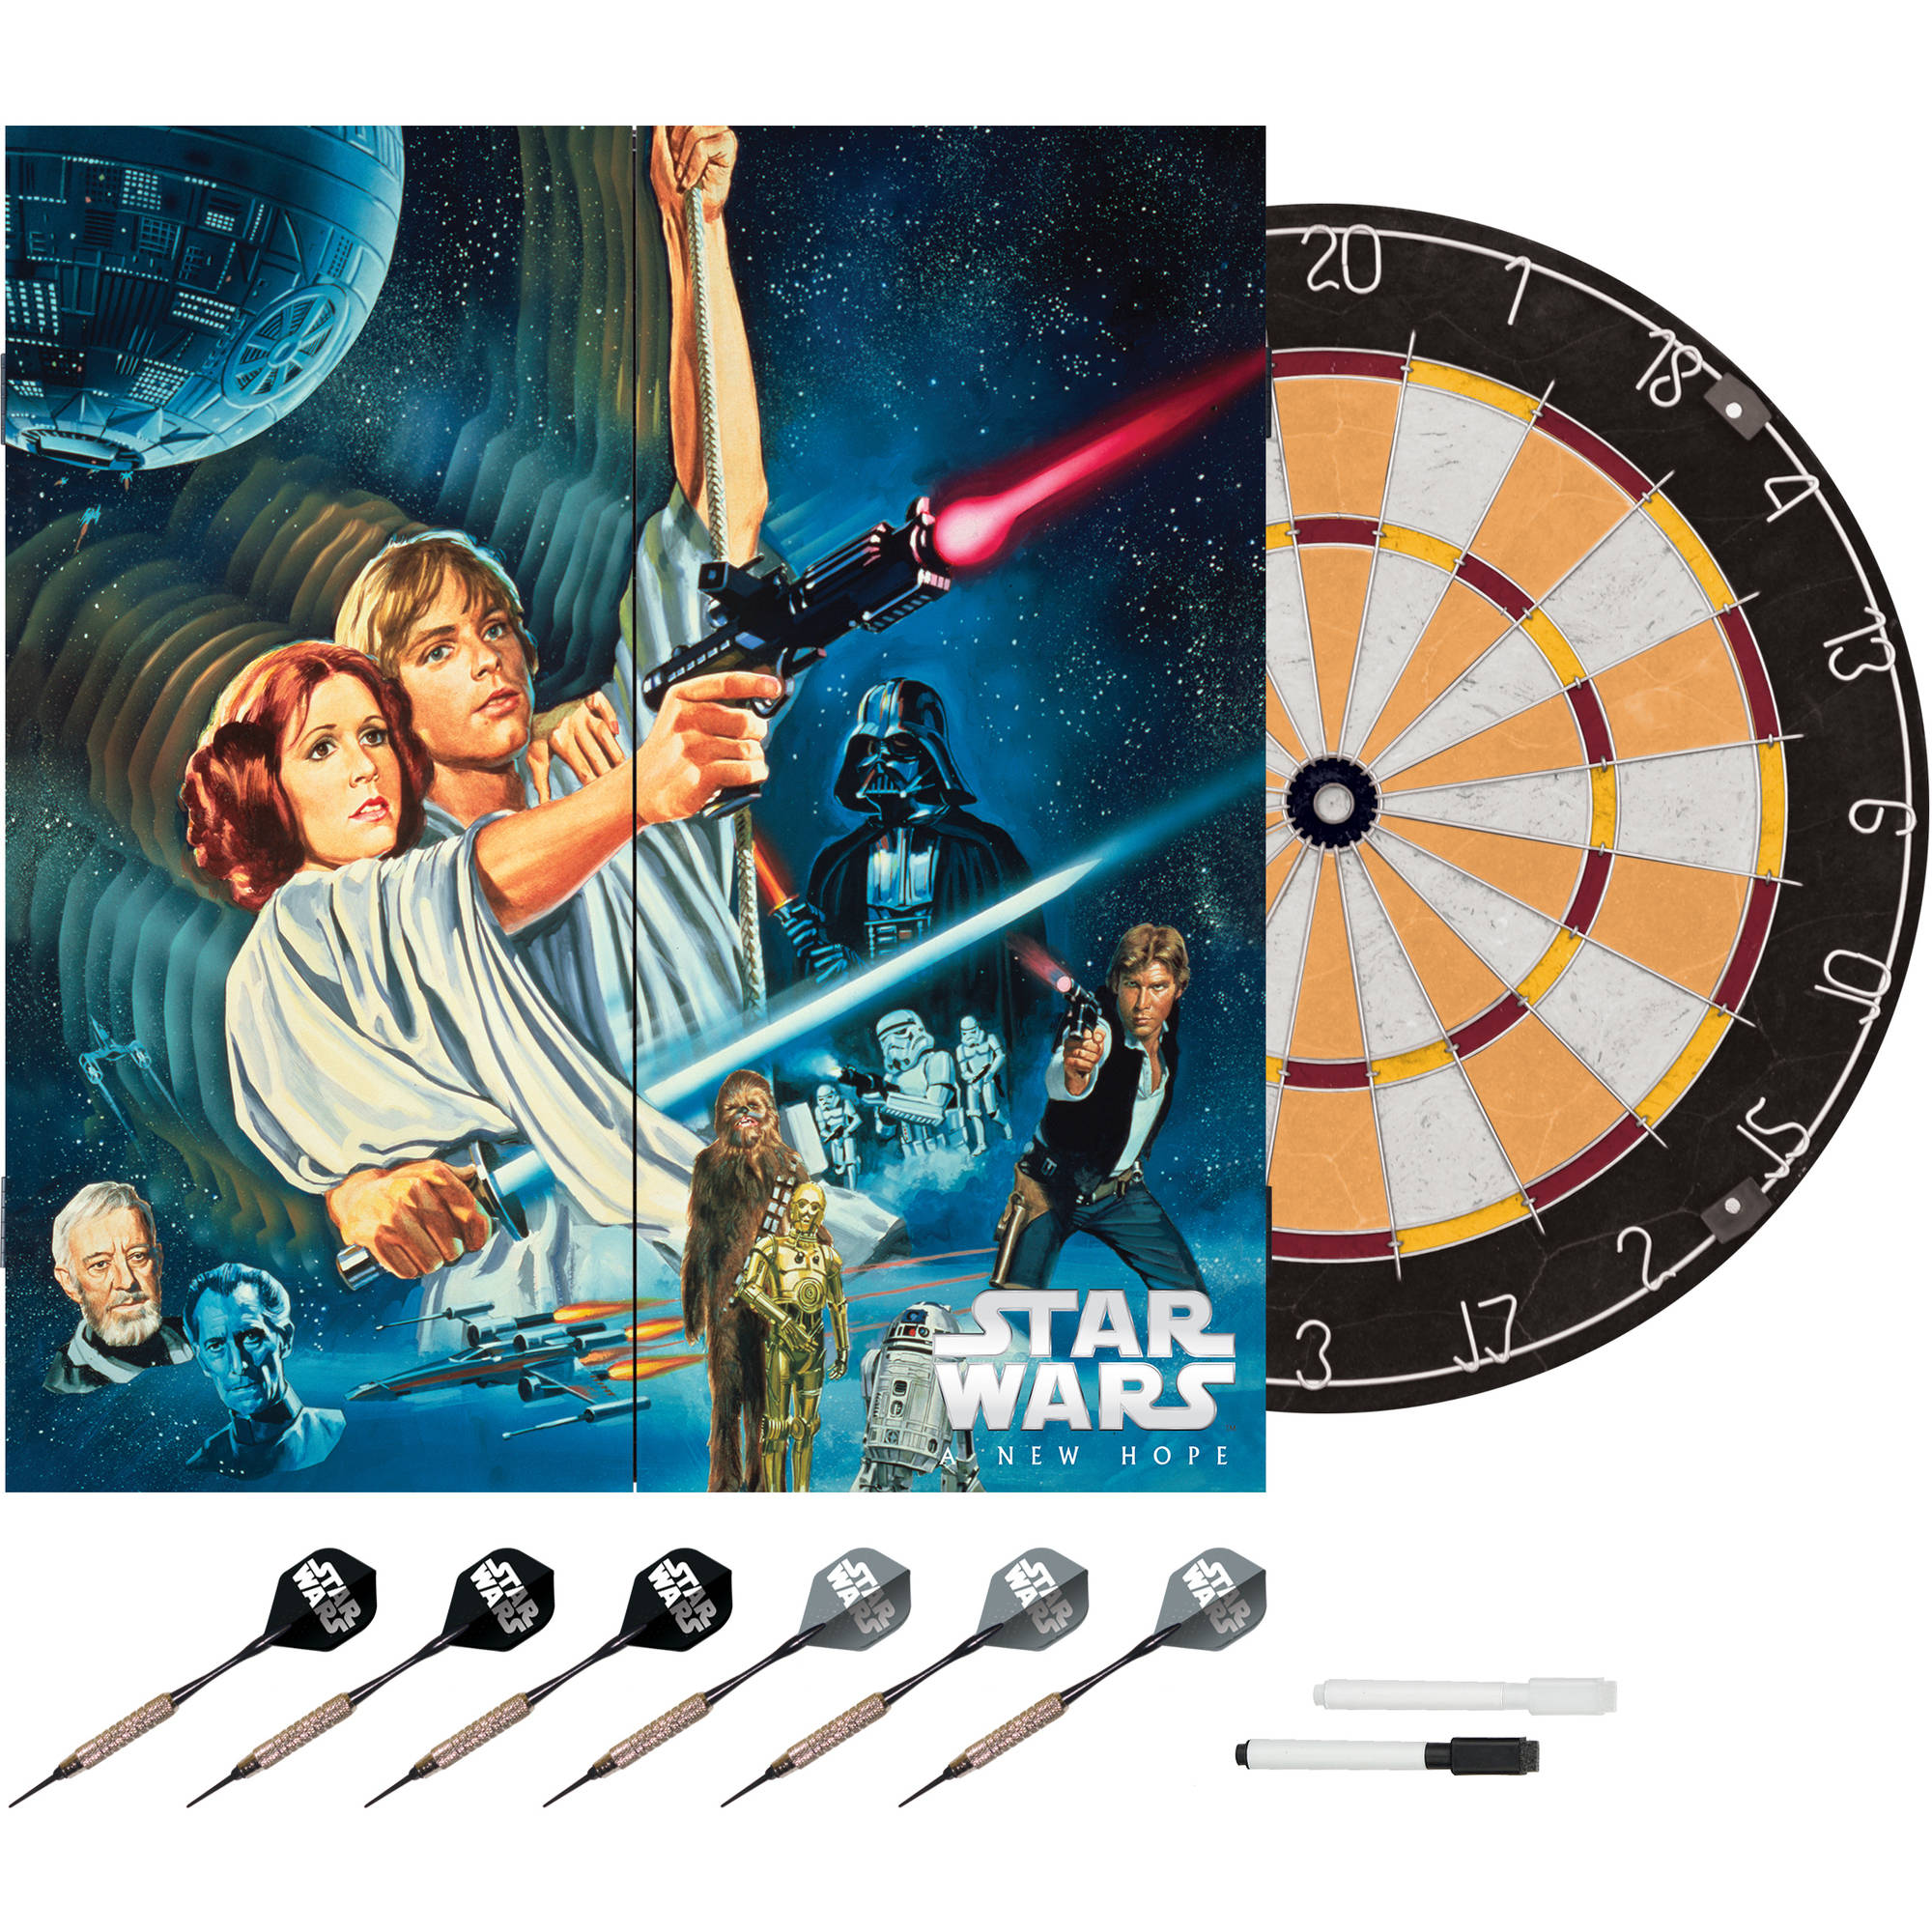 Star Wars Classic New Hope Movie Bristle Dartboard with Cabinet by